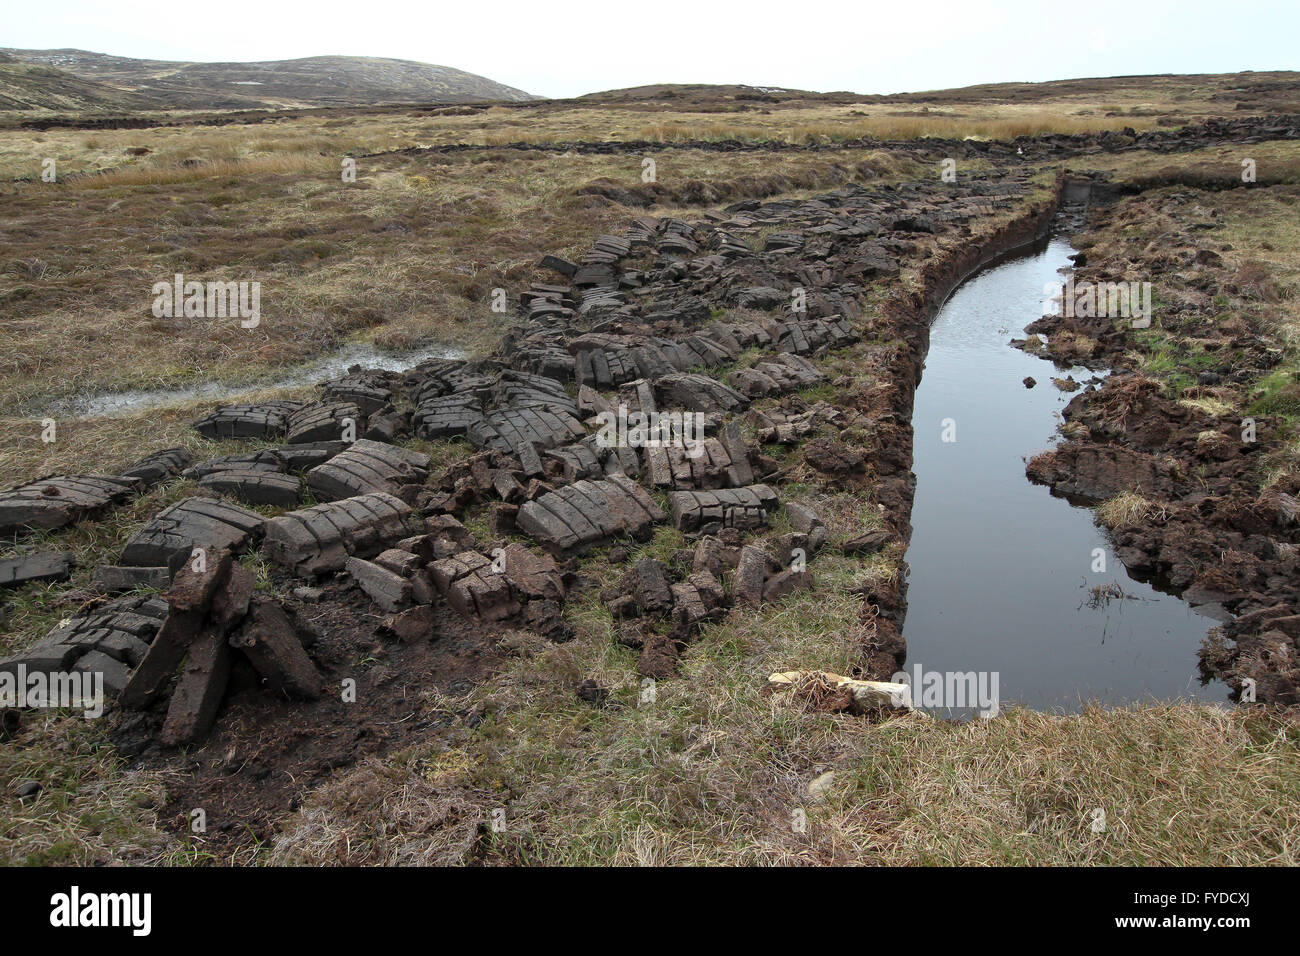 Bog and peat cuttings on Arranmore - the largest inhabited island in County Donegal Ireland. - Stock Image